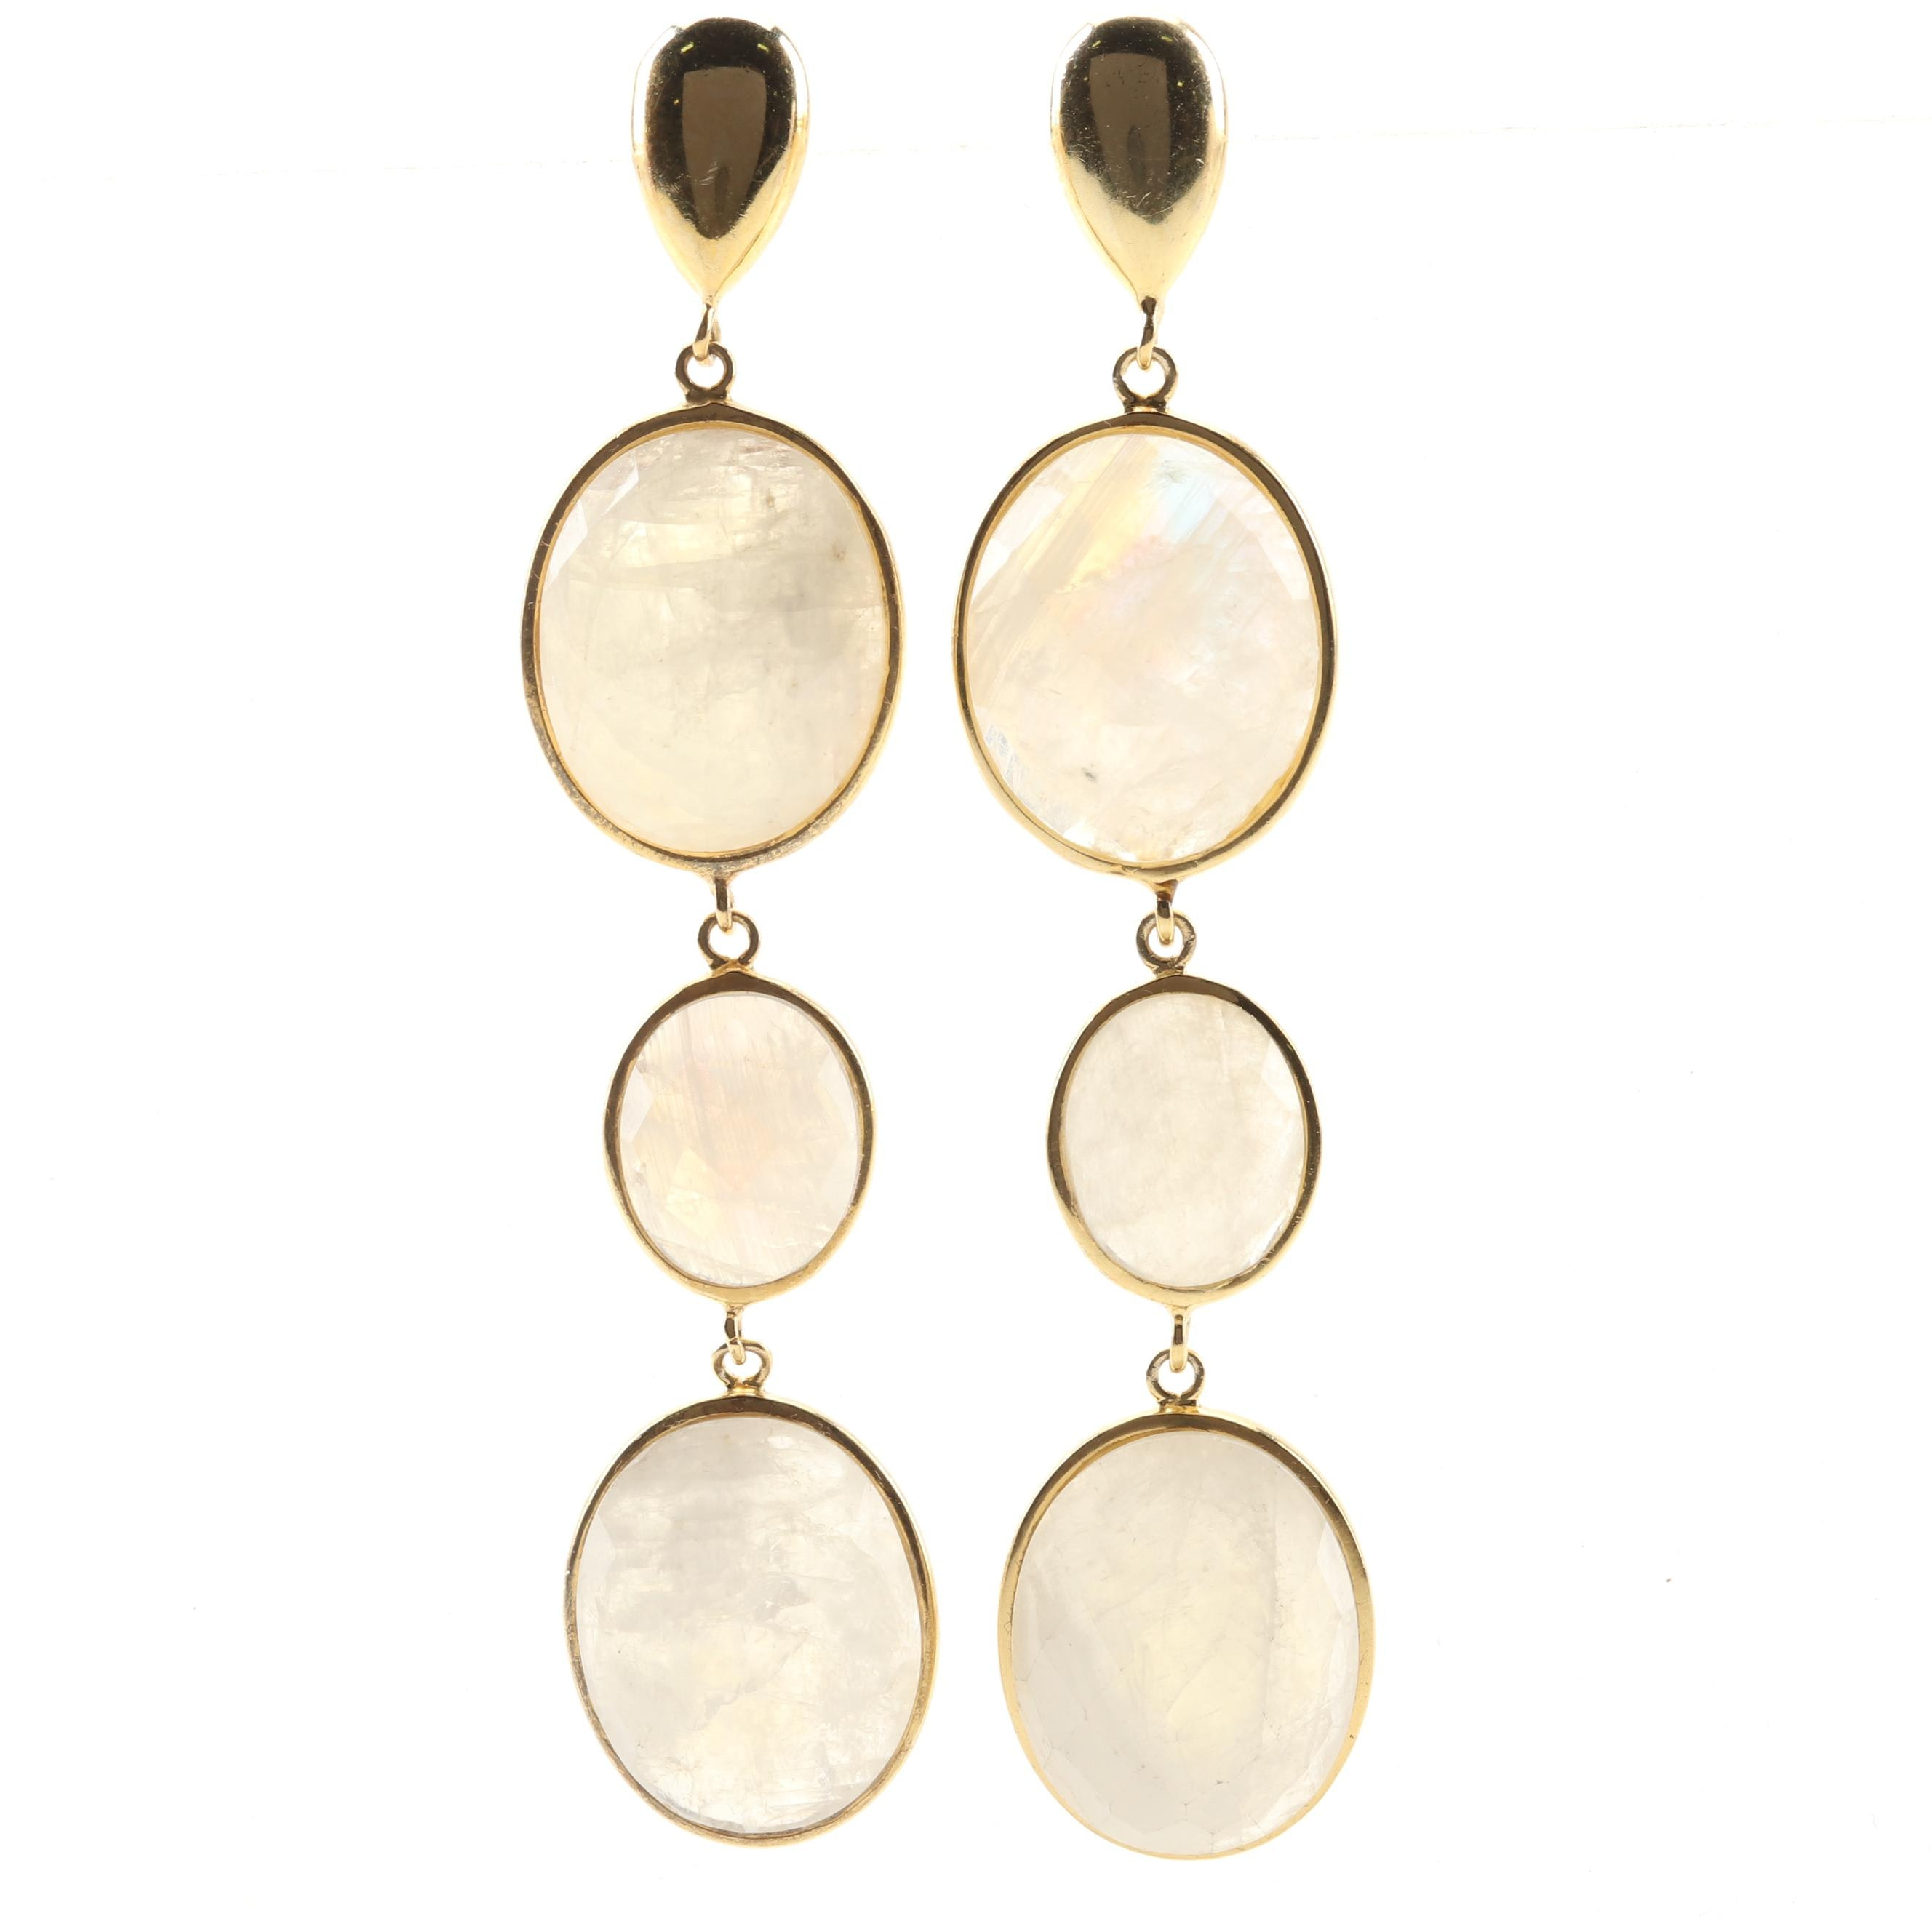 Sterling Silver Bezel Set 36.85 CTW Moonstone Dangle Earrings With a Gold Wash